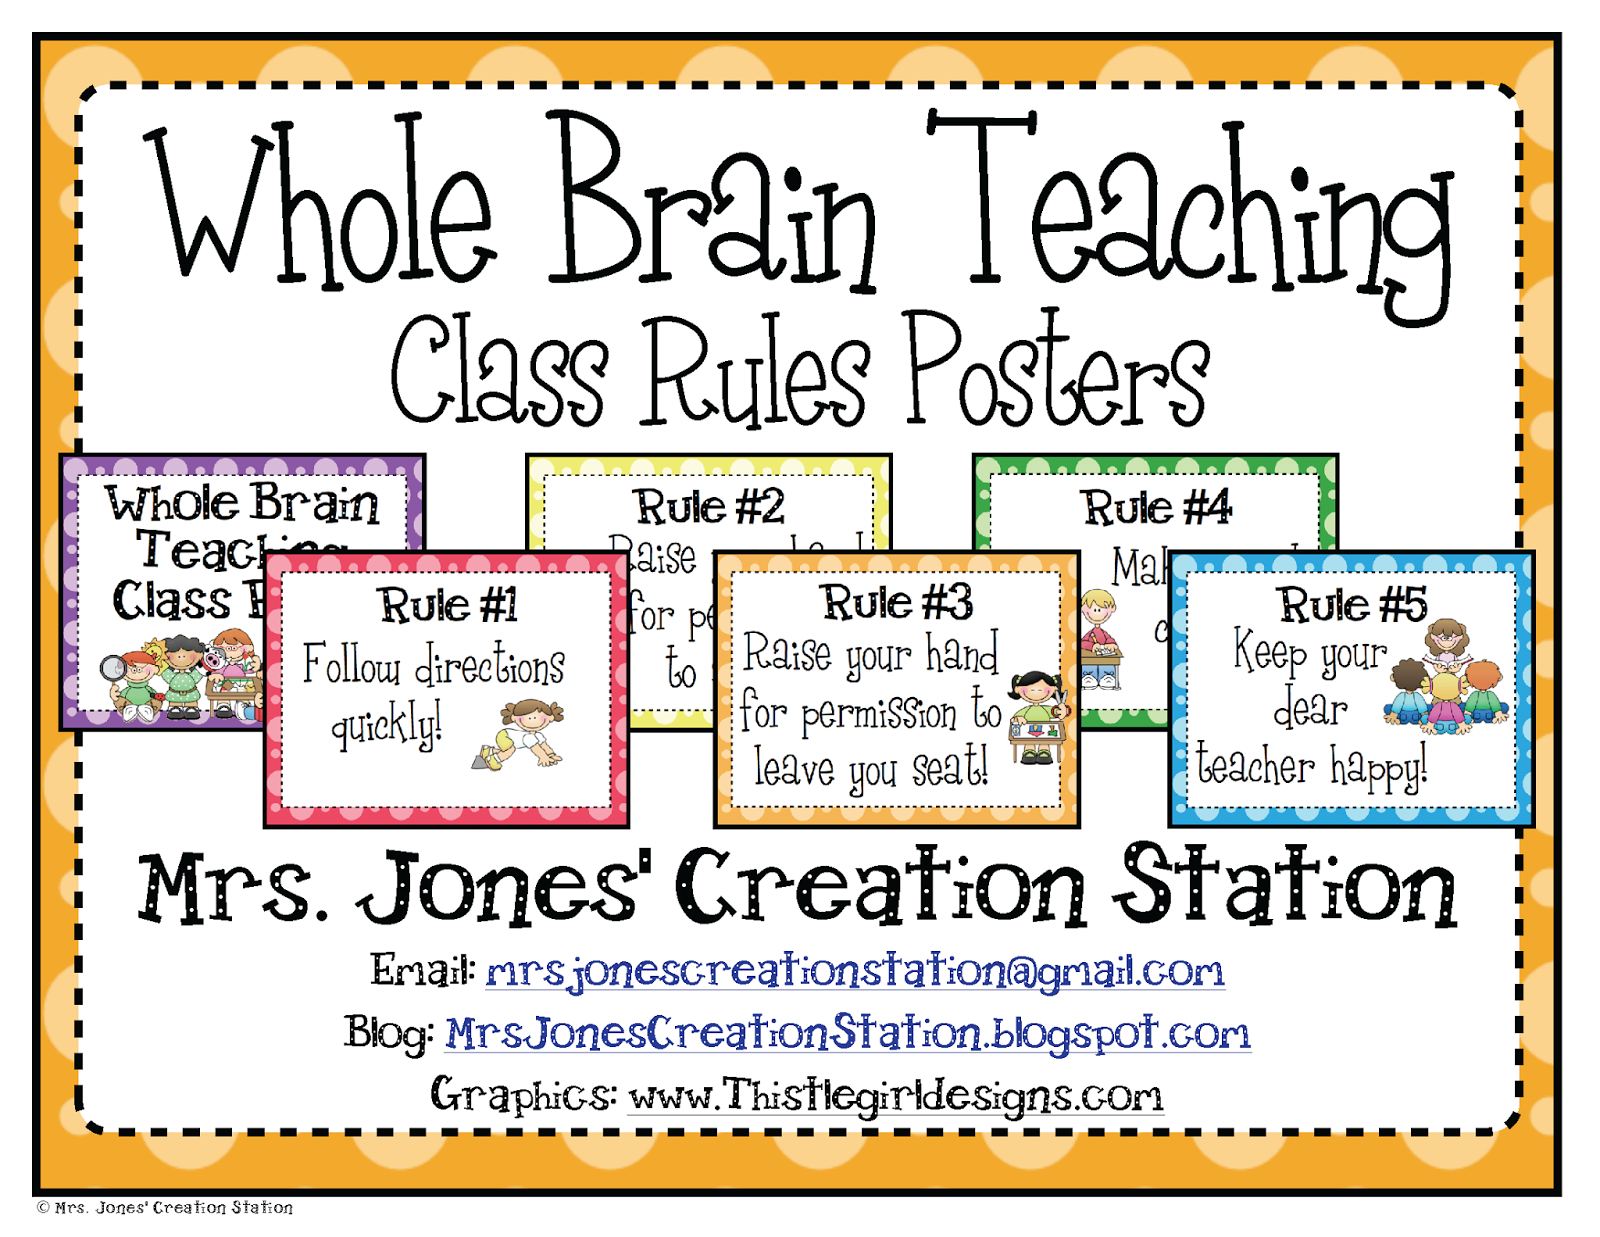 Poster design for class 5 - Whole Brain Teaching Class Rules Posters Freebie